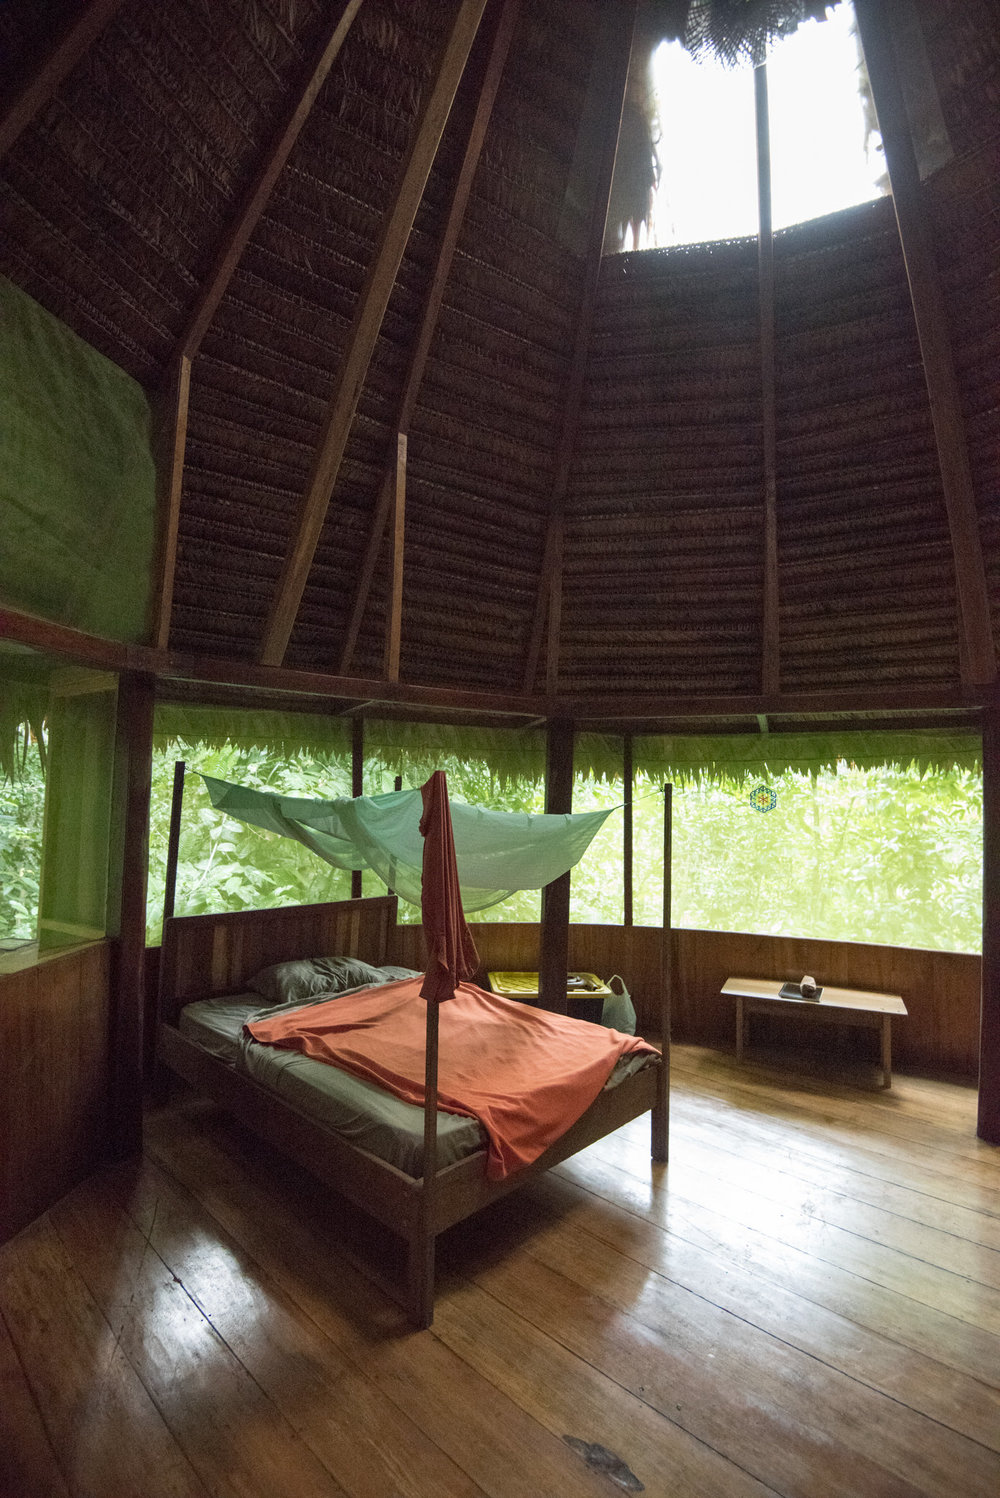 Rainforest Healing Center Peru by Dave Blake Photographer (169-peru).jpg